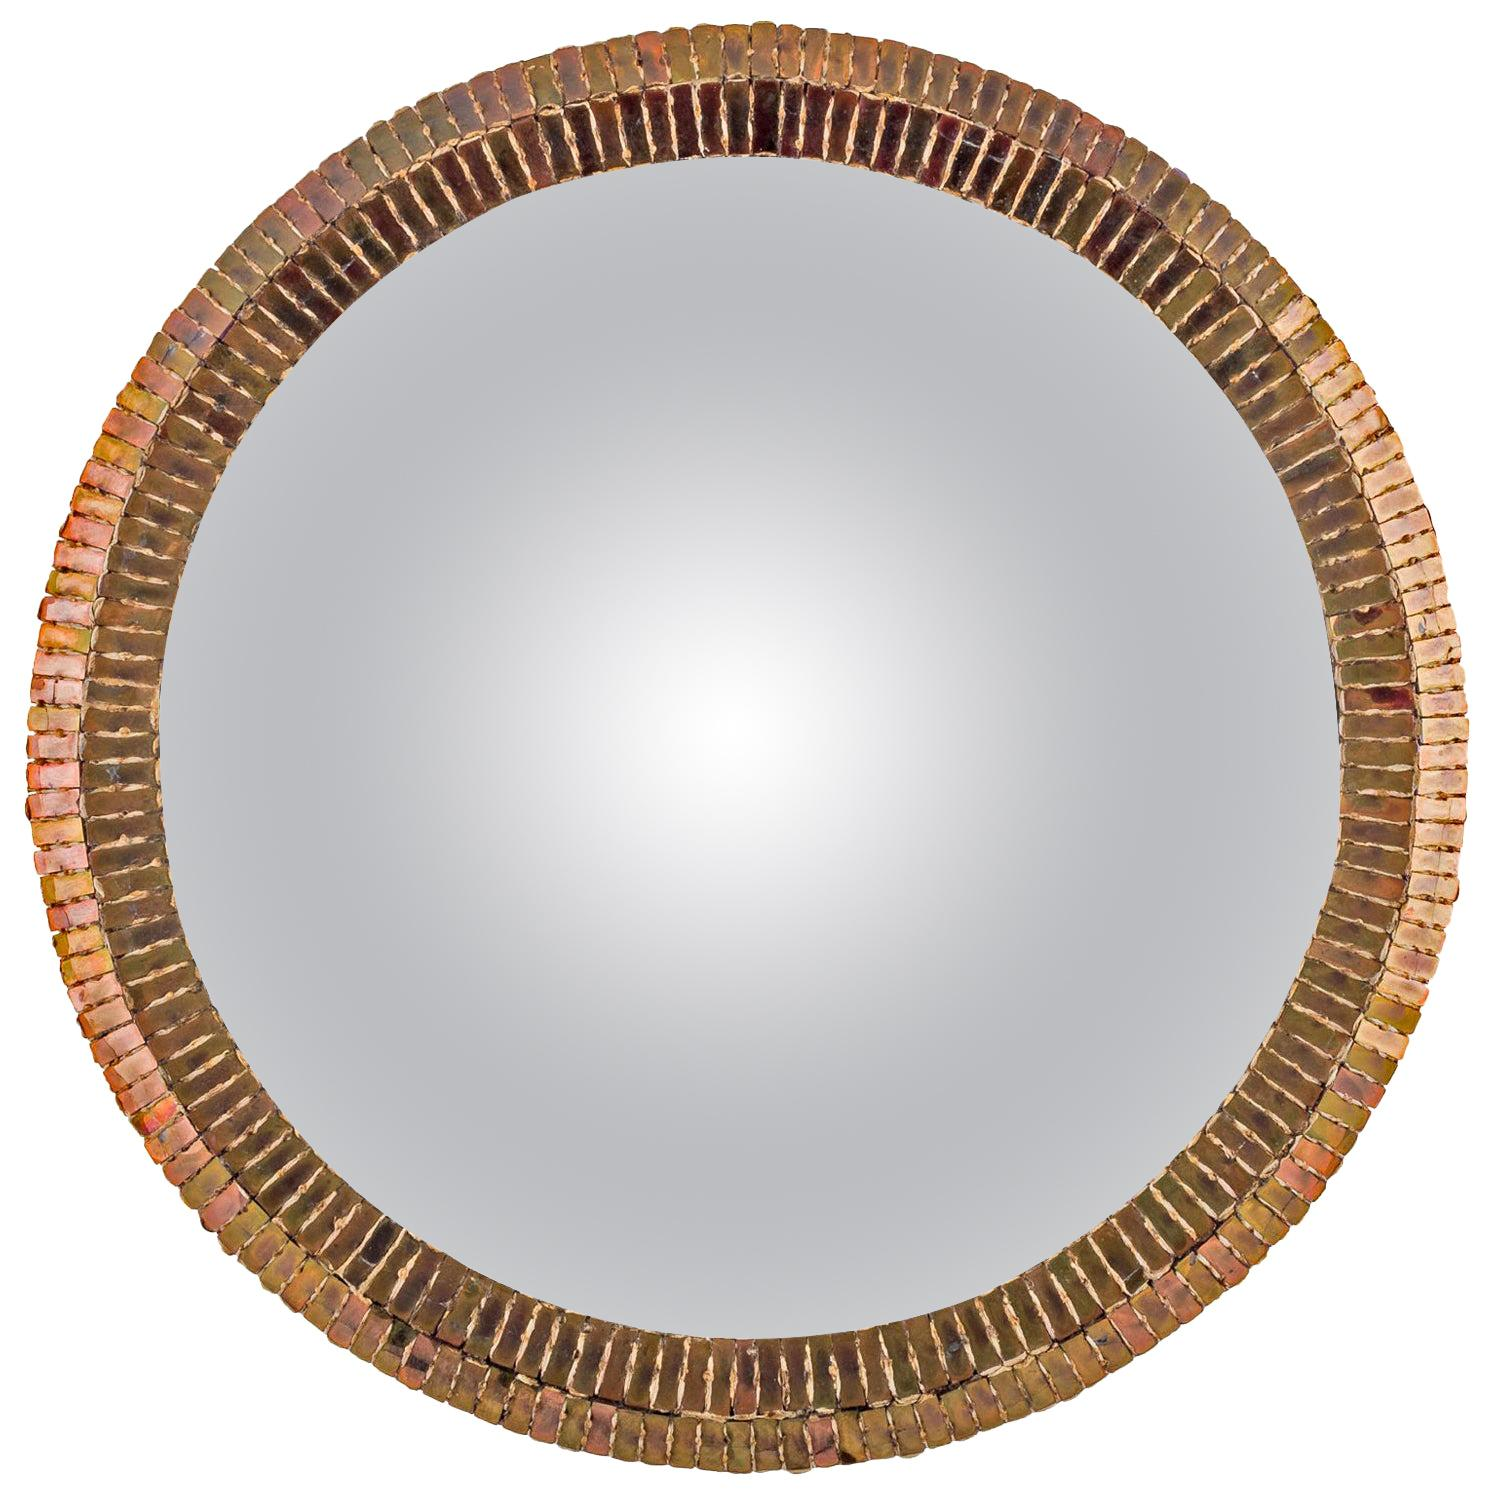 """Line Vautrin French Convex Mirror """"Couronne"""" Gold Bronze Incrusted Mirrors"""